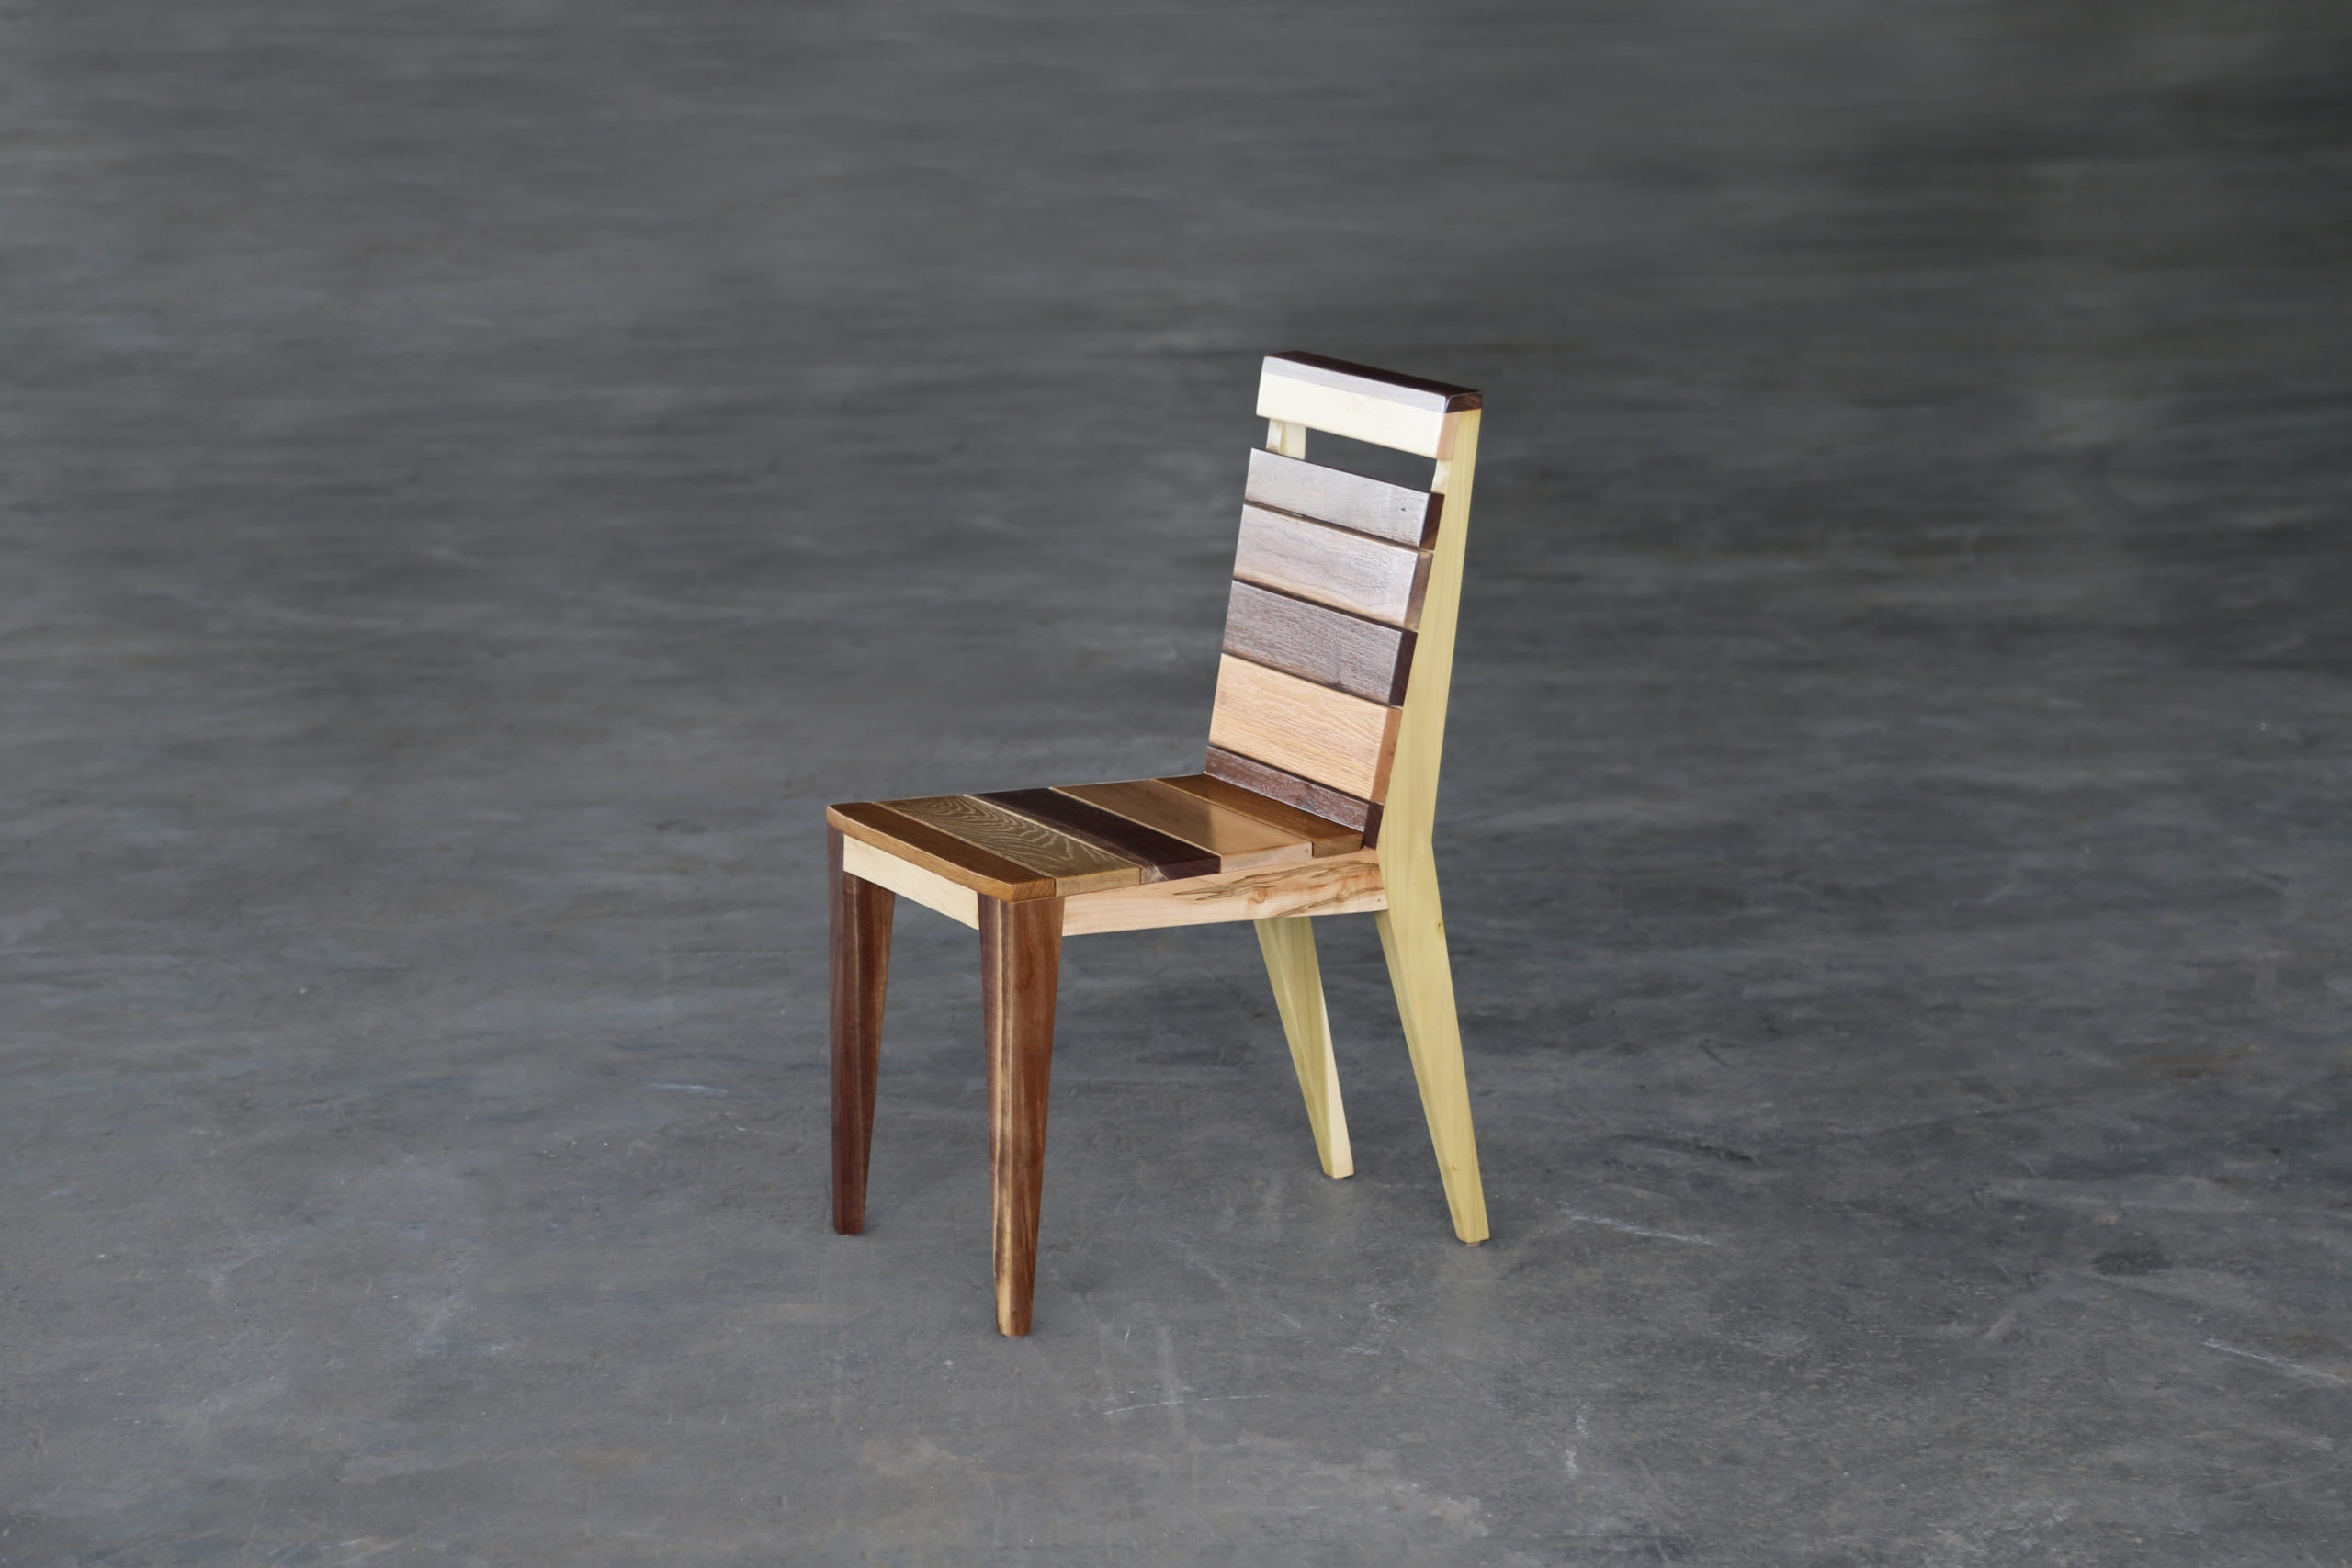 a SENTIENT contemporary designed Angles dining chair in walnut with custom stripped back and seat on a grey concrete floor